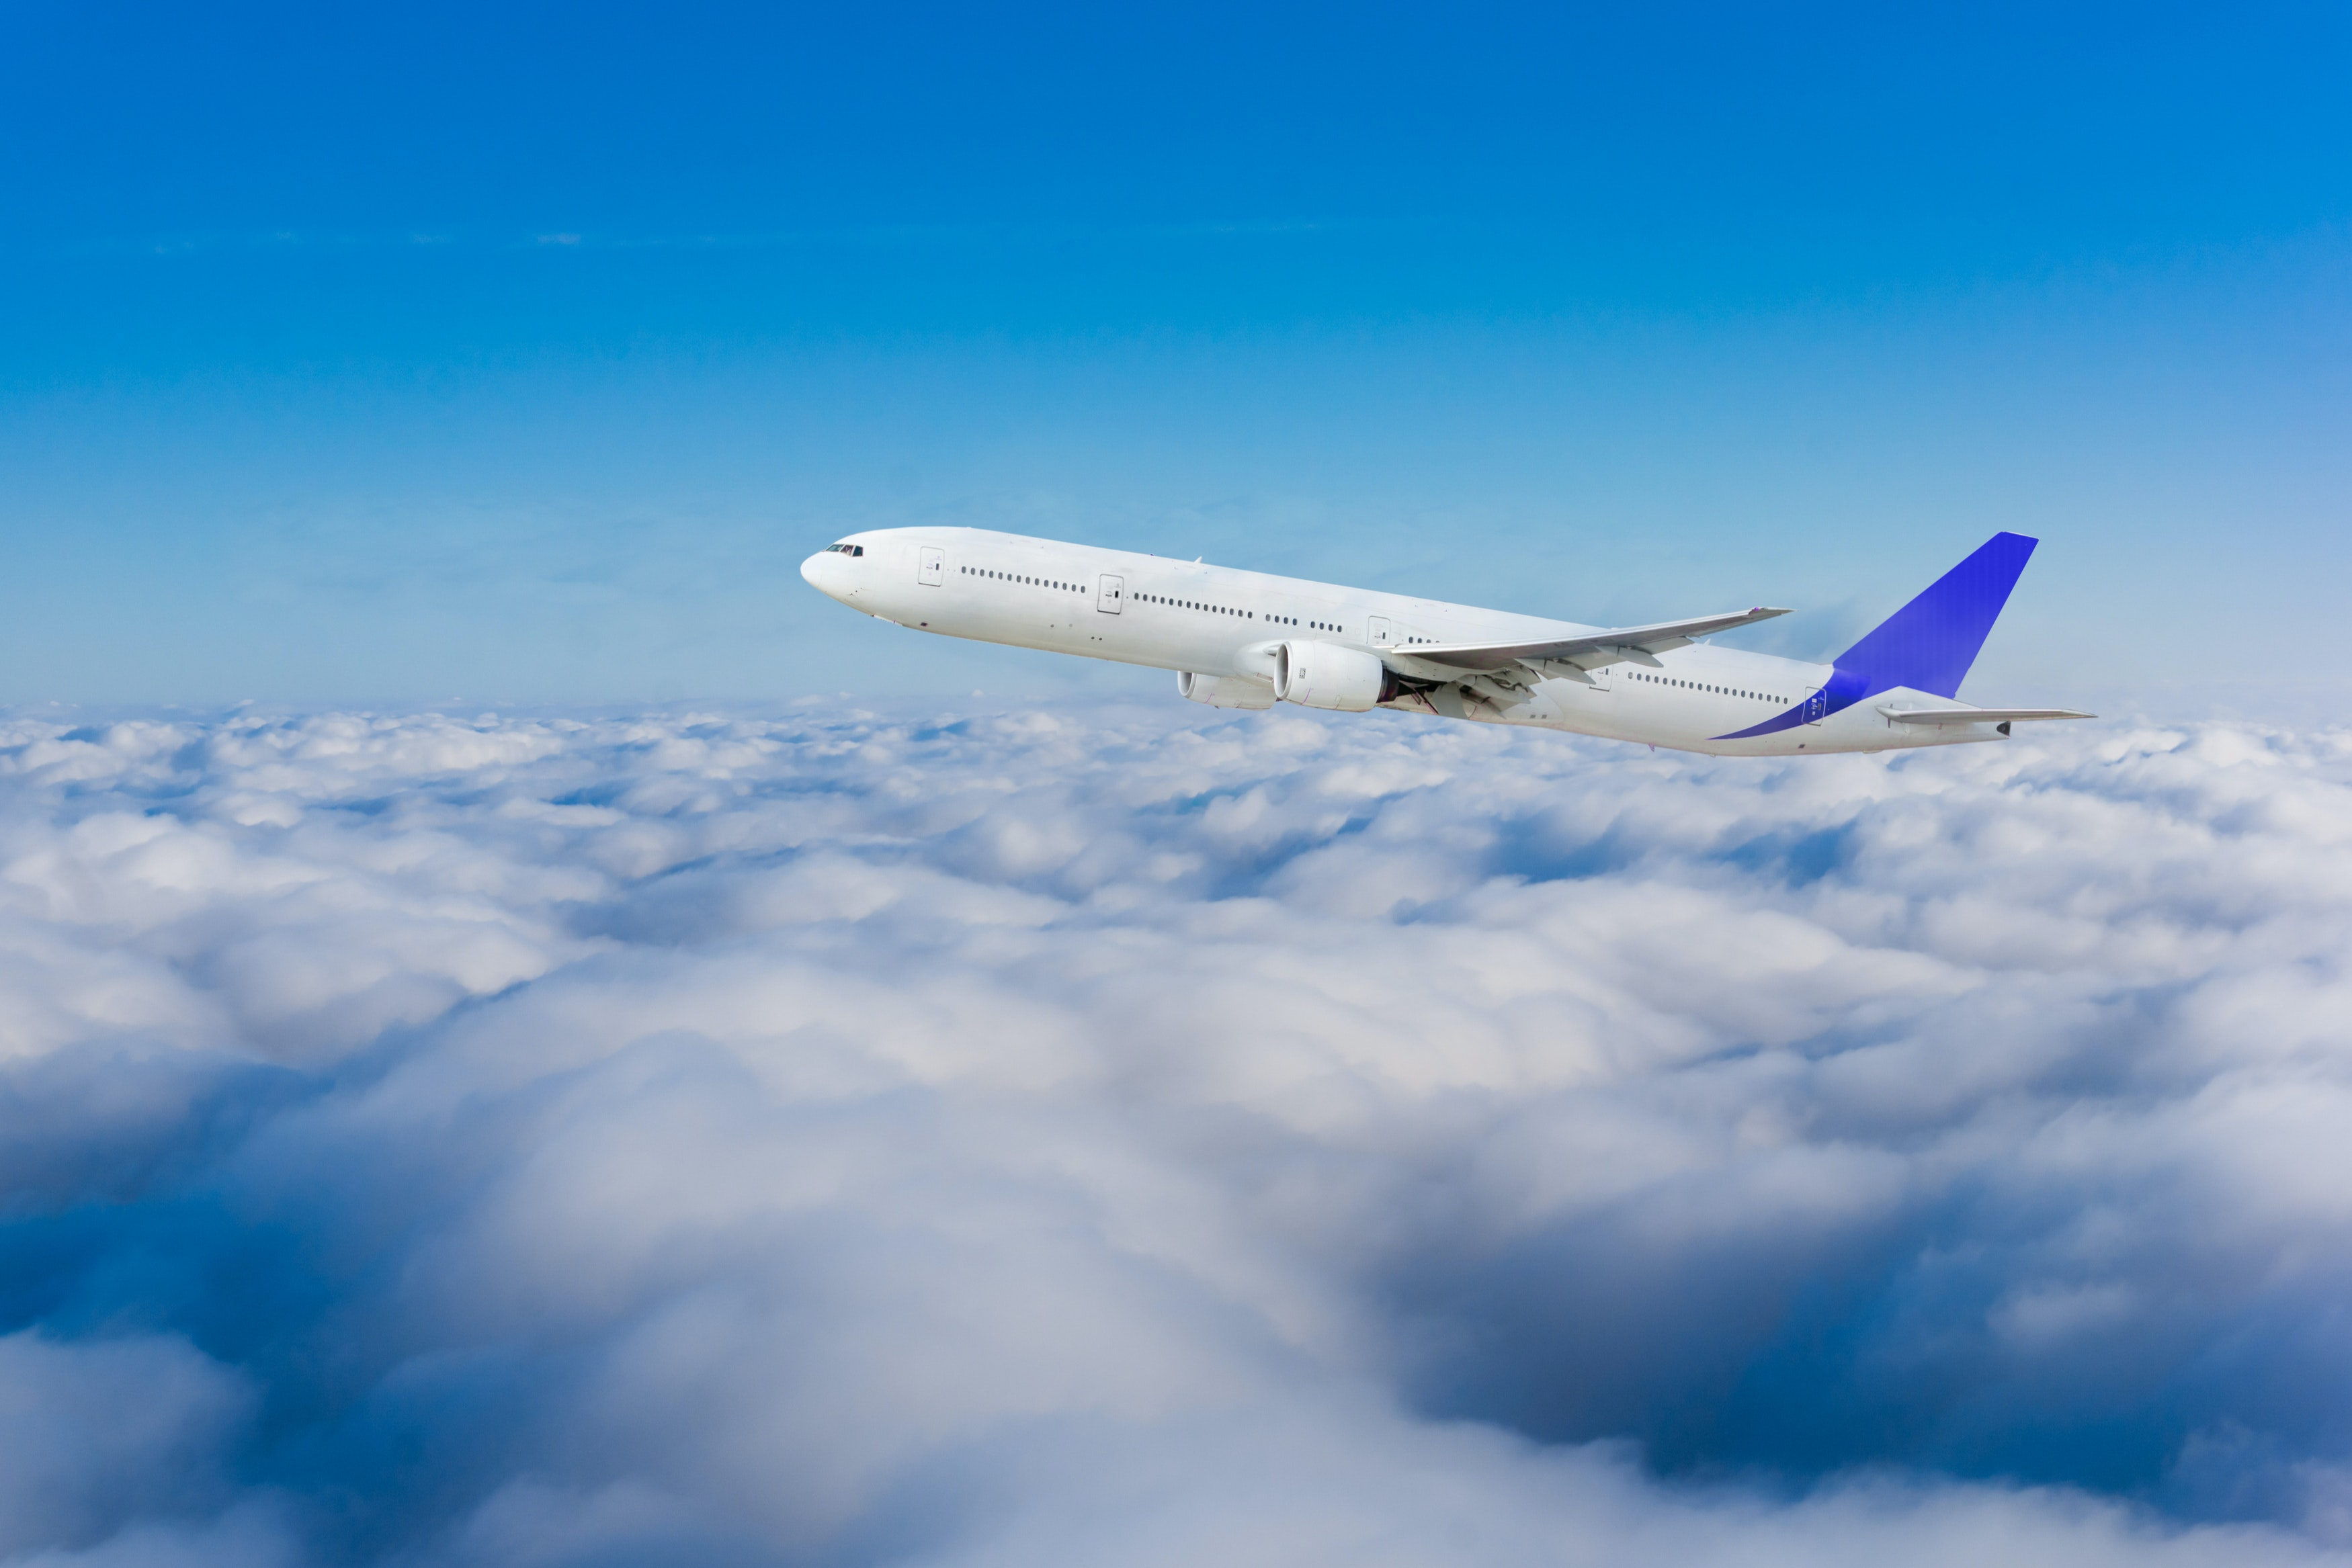 The majority of turbulence experienced aboard commercial aircraft is light in nature.